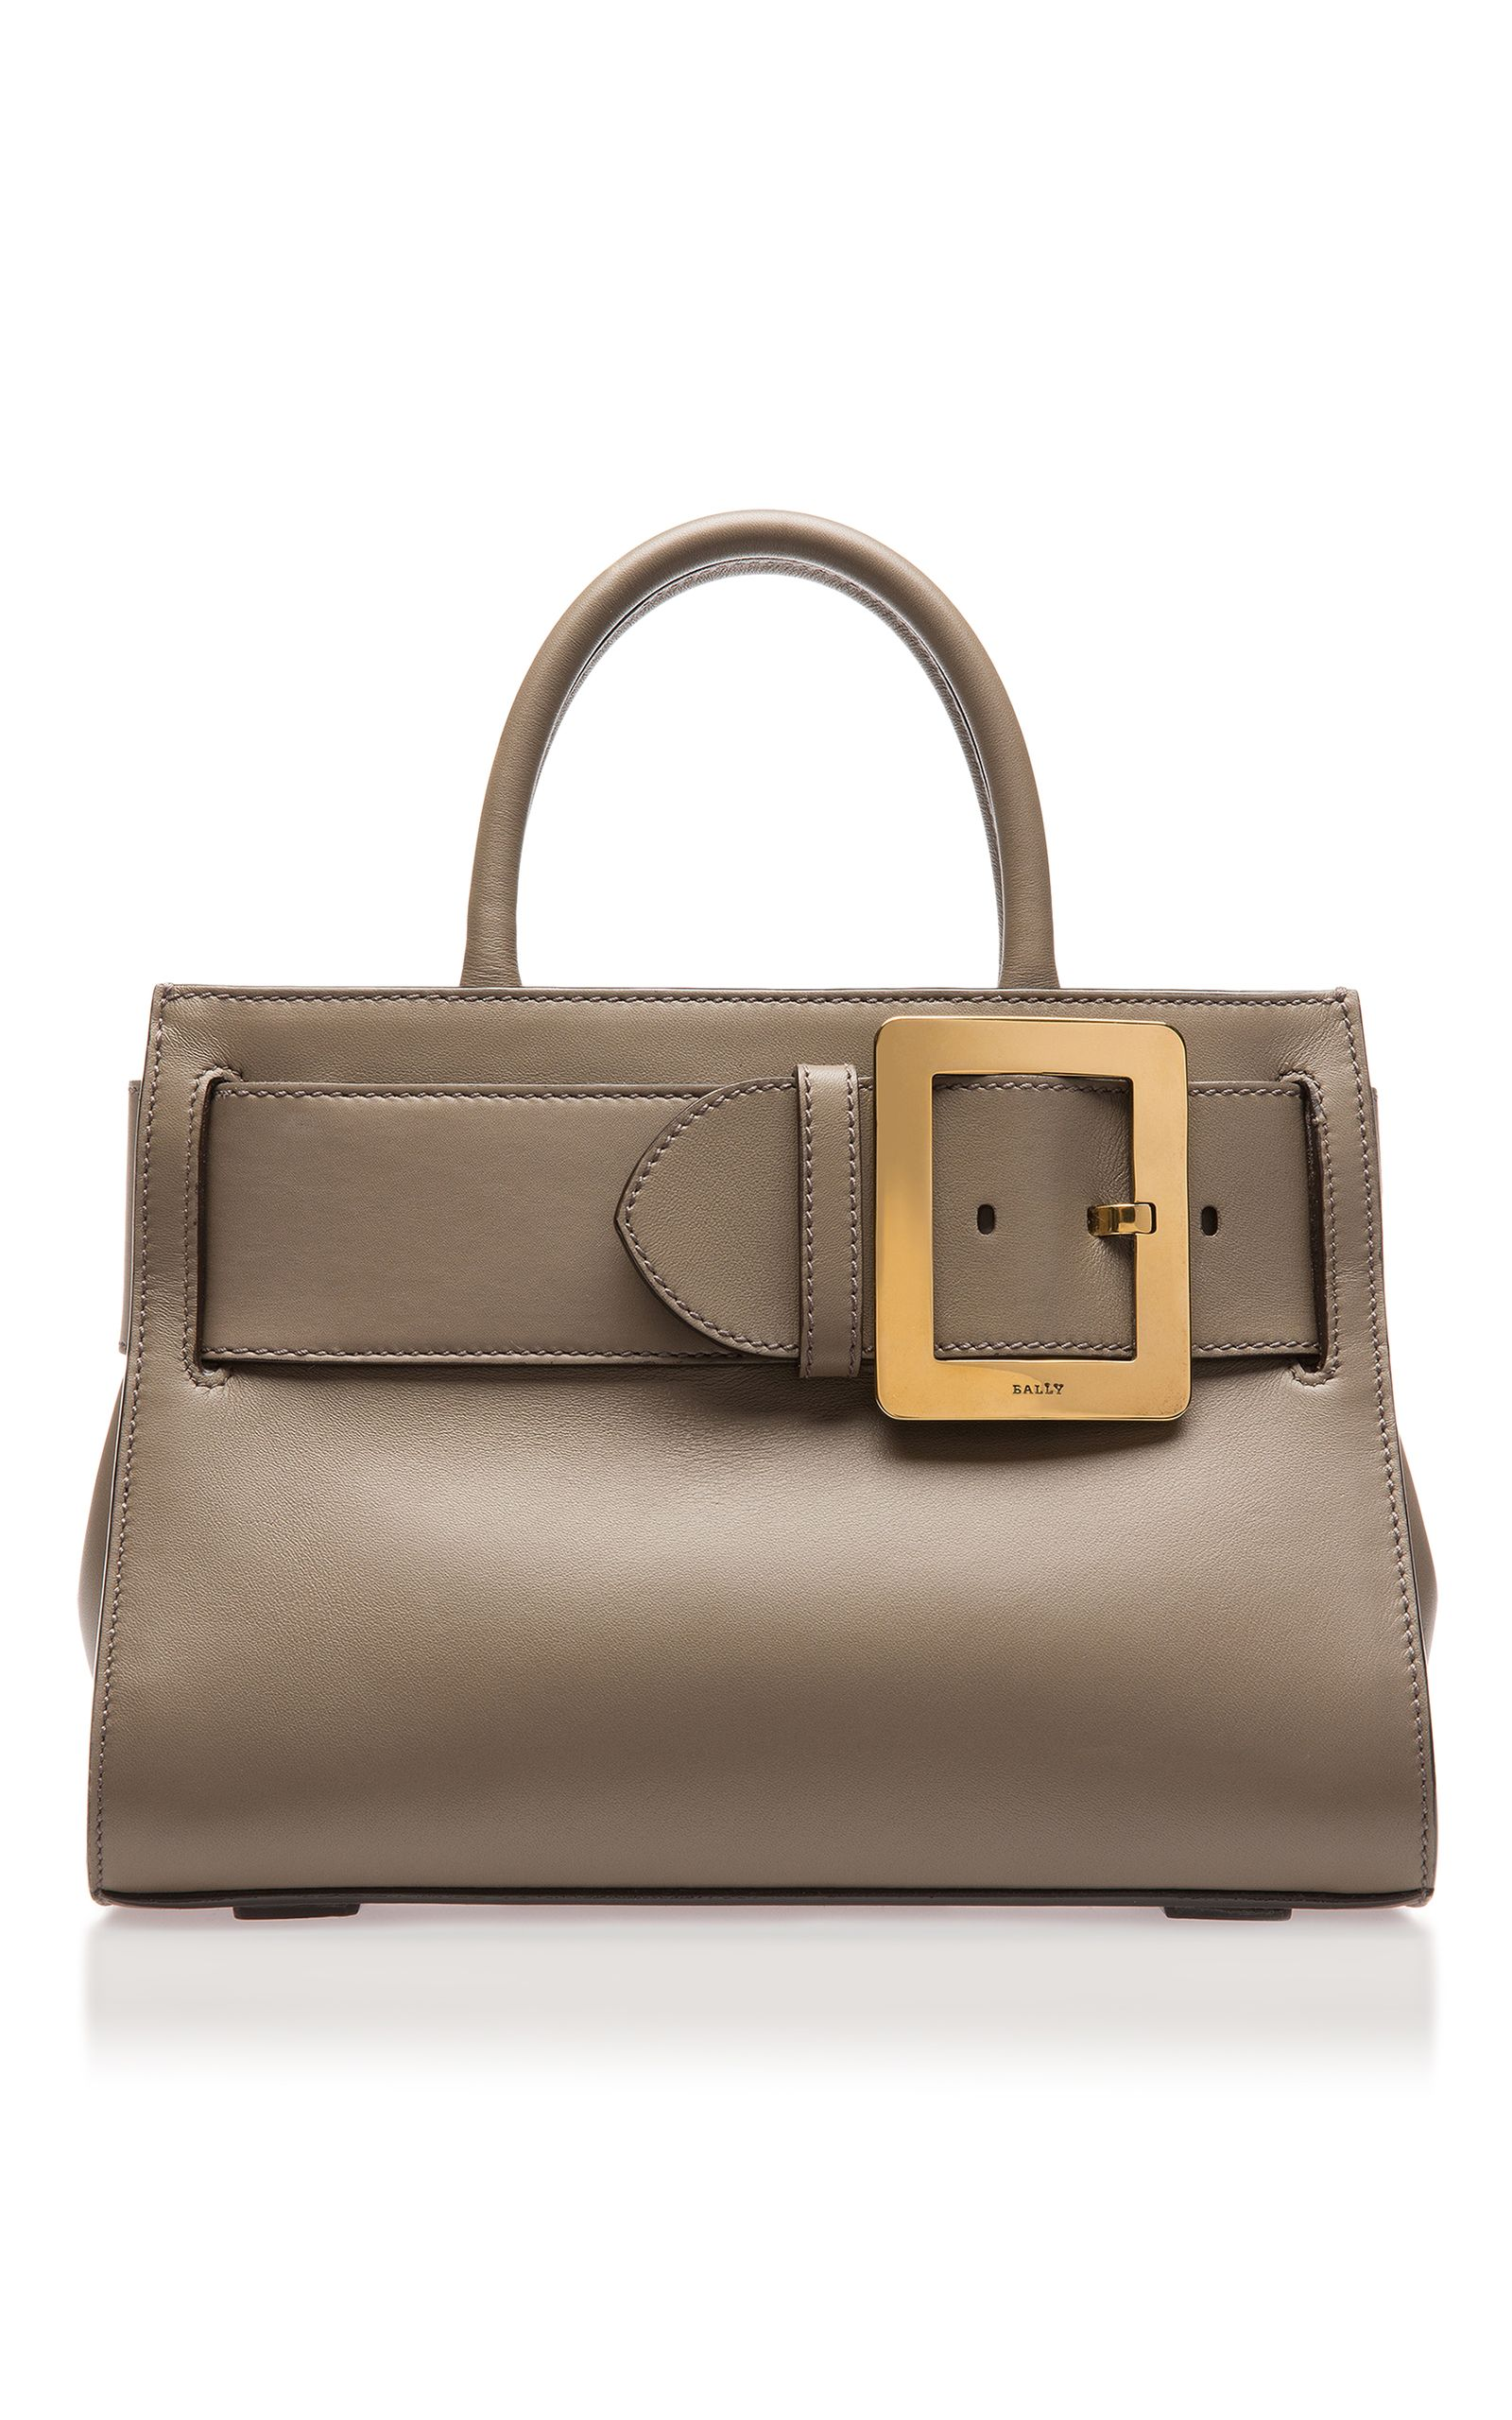 BALLY M O Exclusive  Belle Small Tote.  bally  bags  leather  hand bags   tote   a1fa61b430